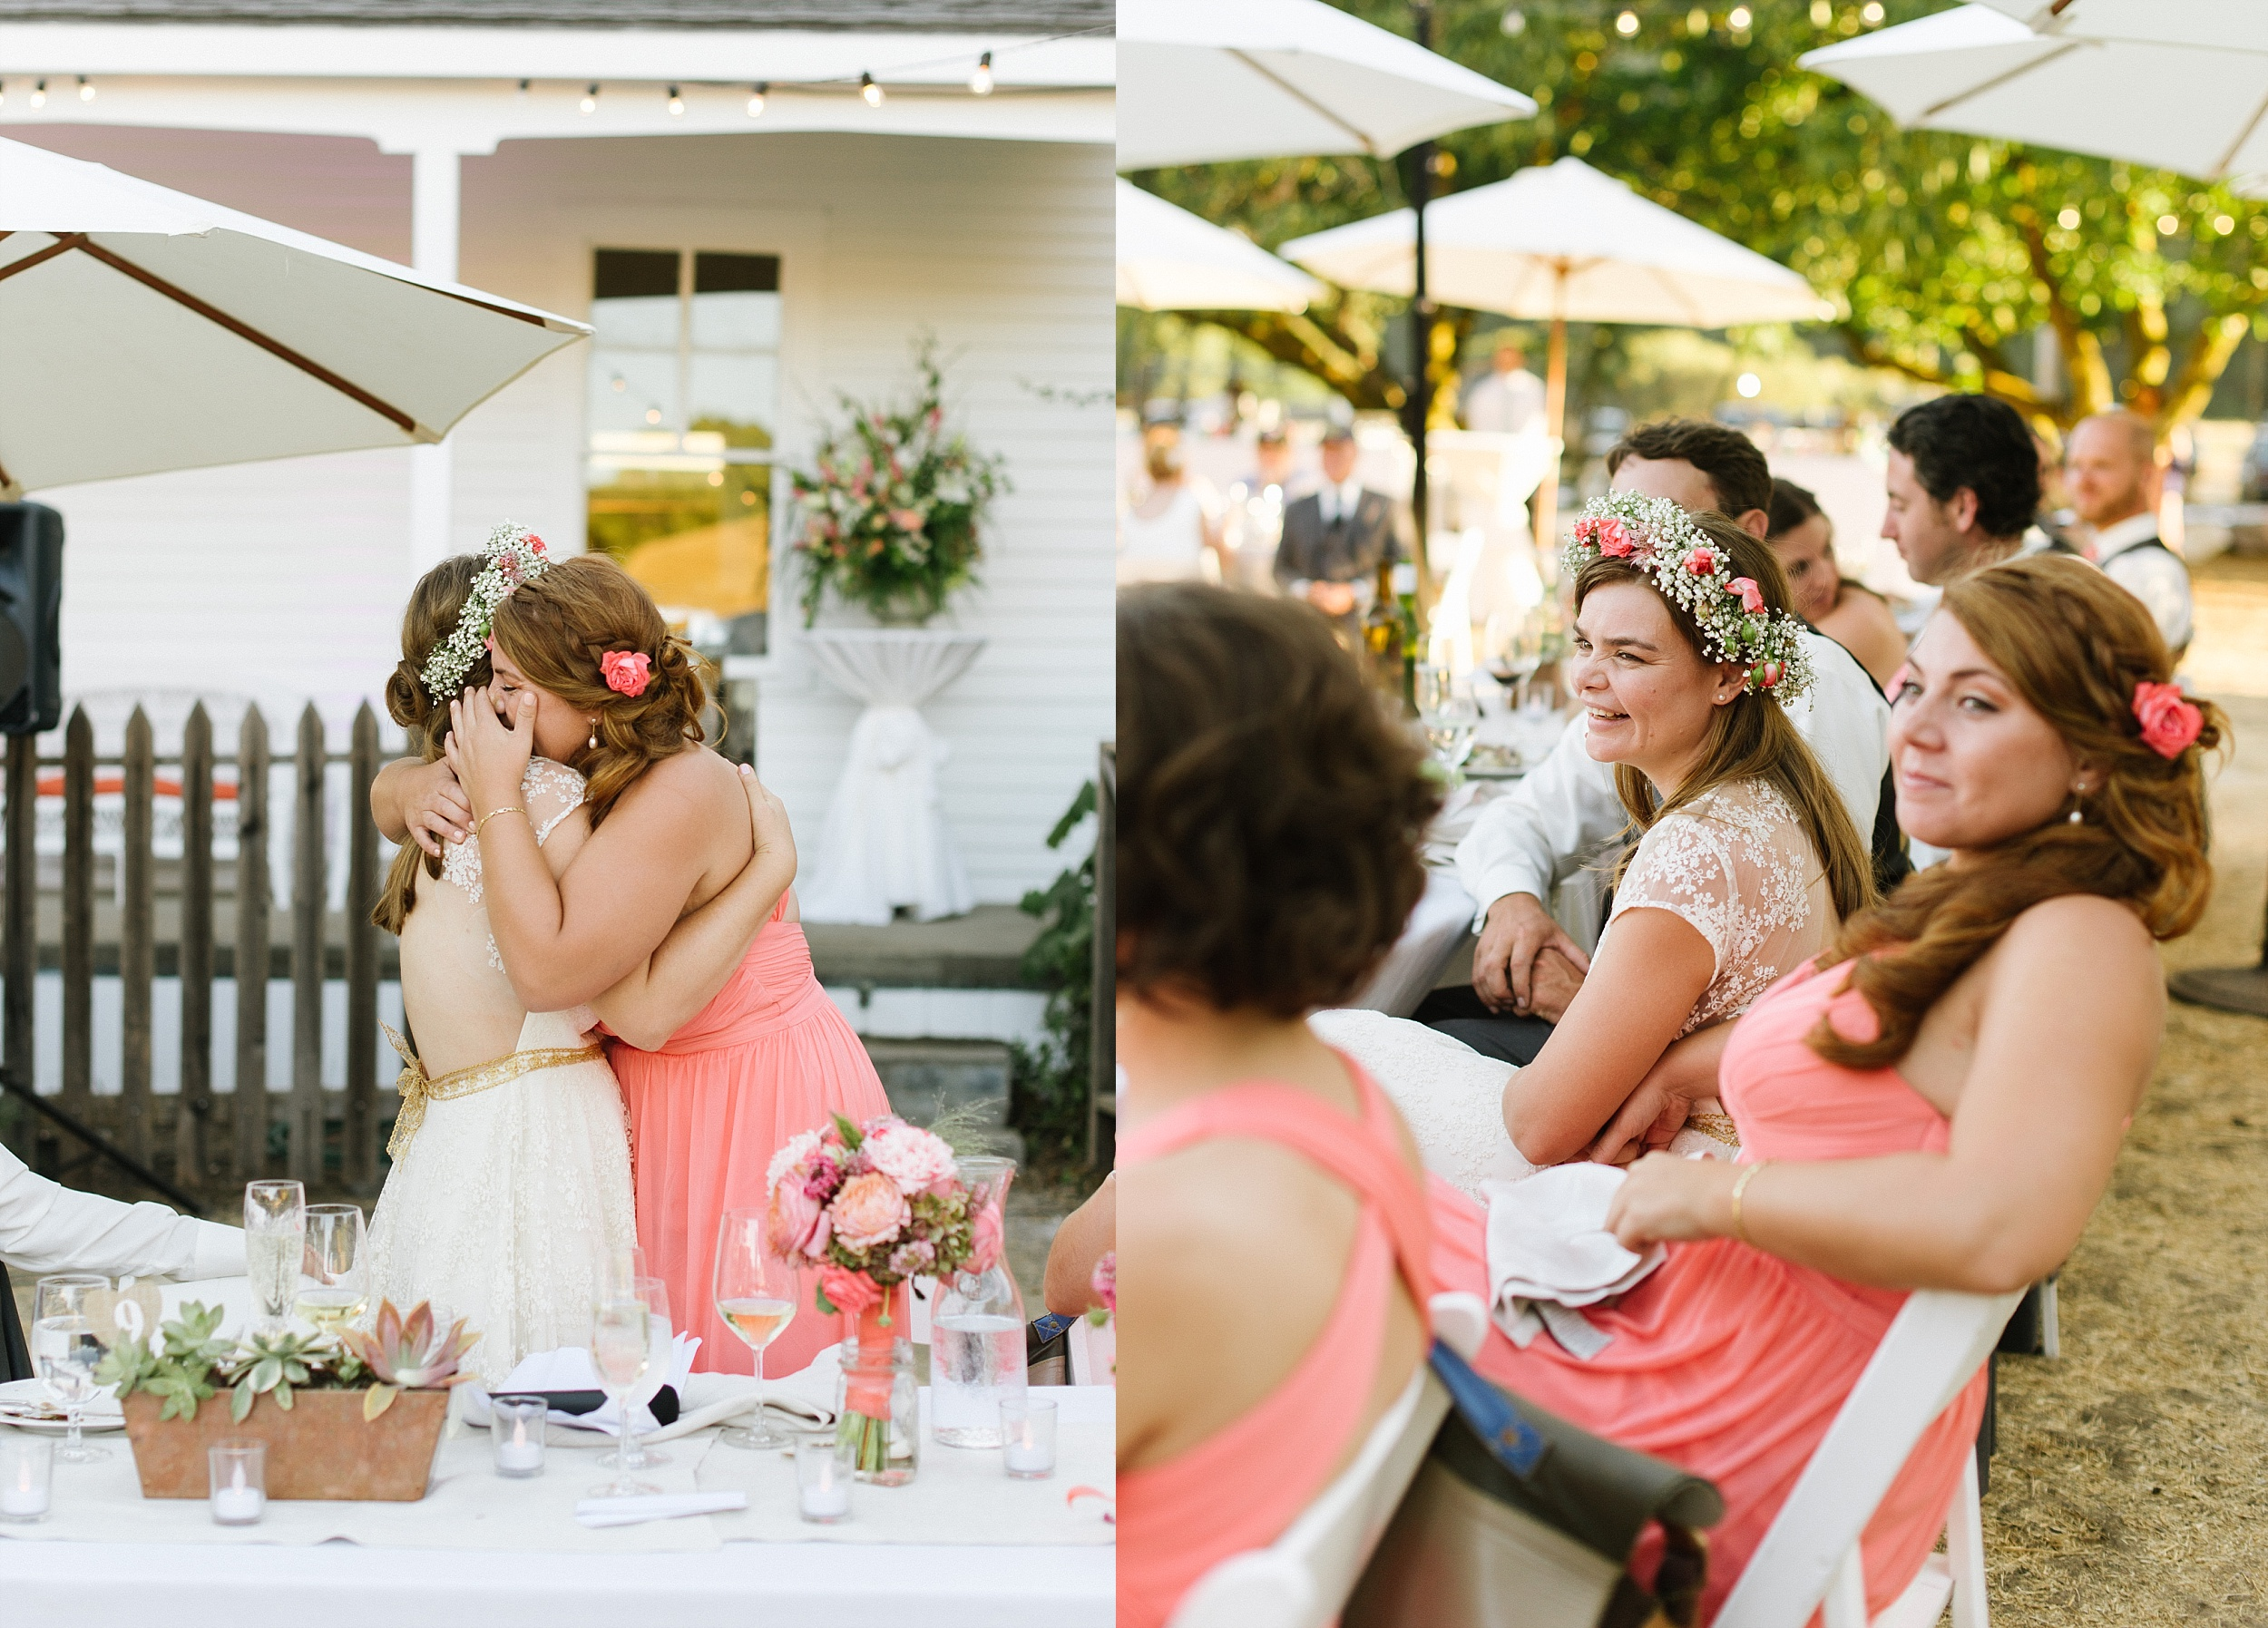 fairfax_ranch_wedding_chelsea_dier_photography_0060.jpg